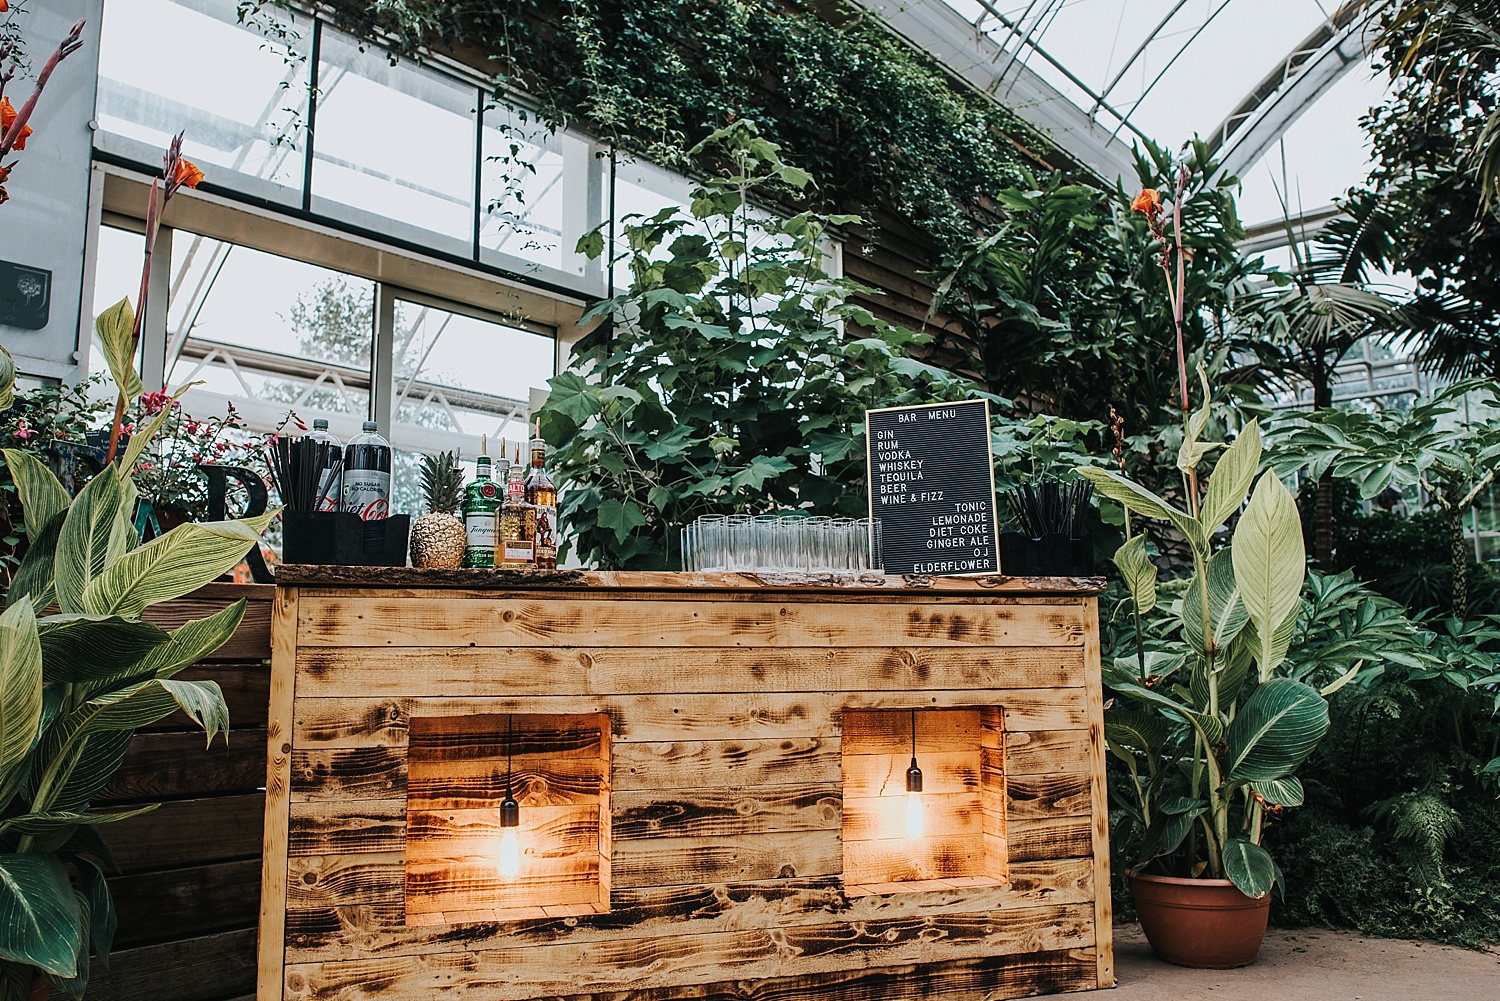 DIY pallet bar set up inside RHS Wisley glasshouse